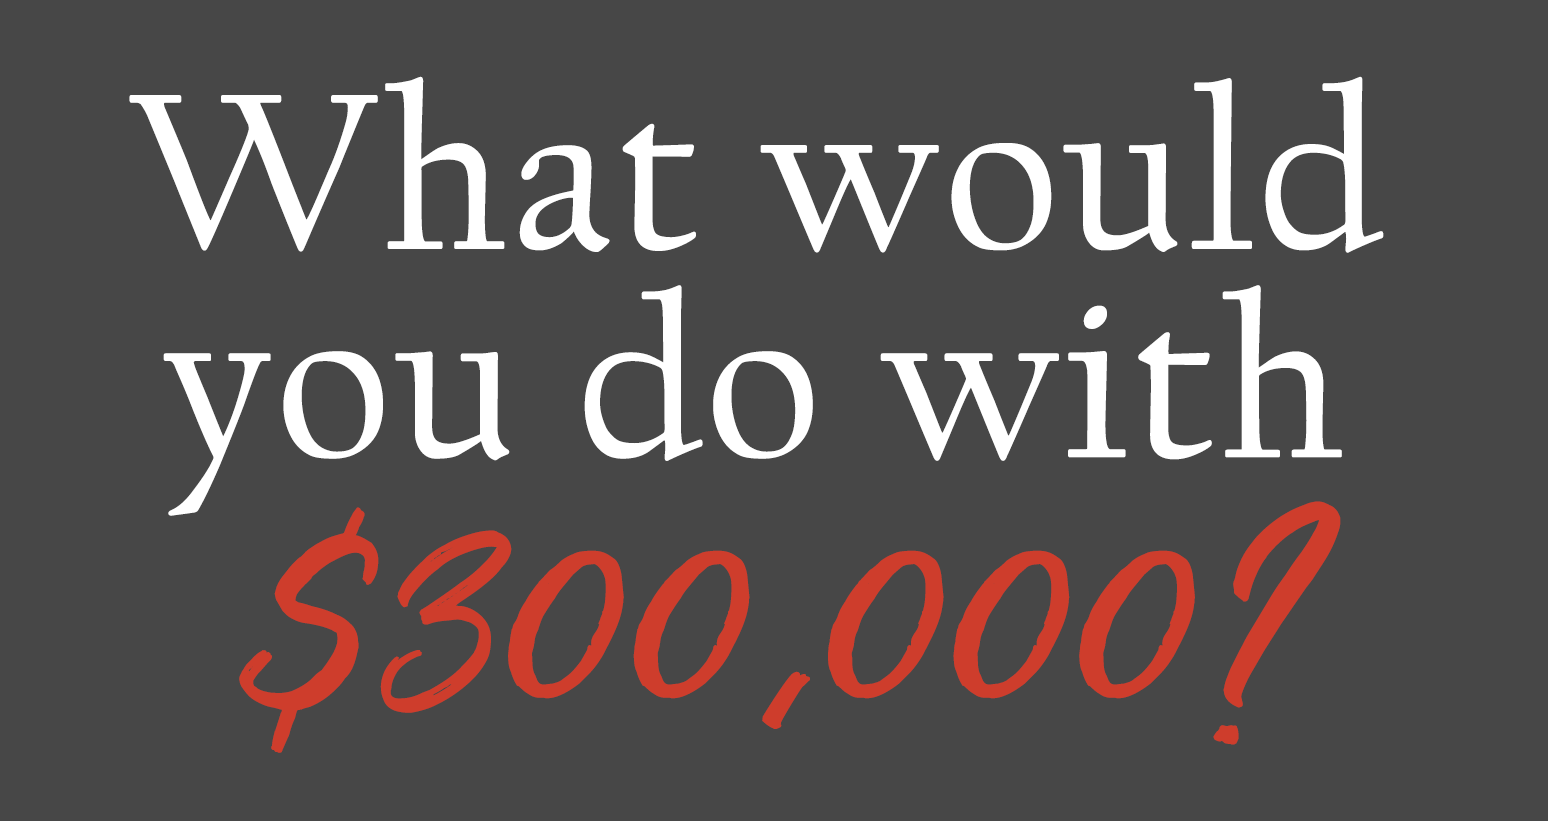 What would you do with $300,000?